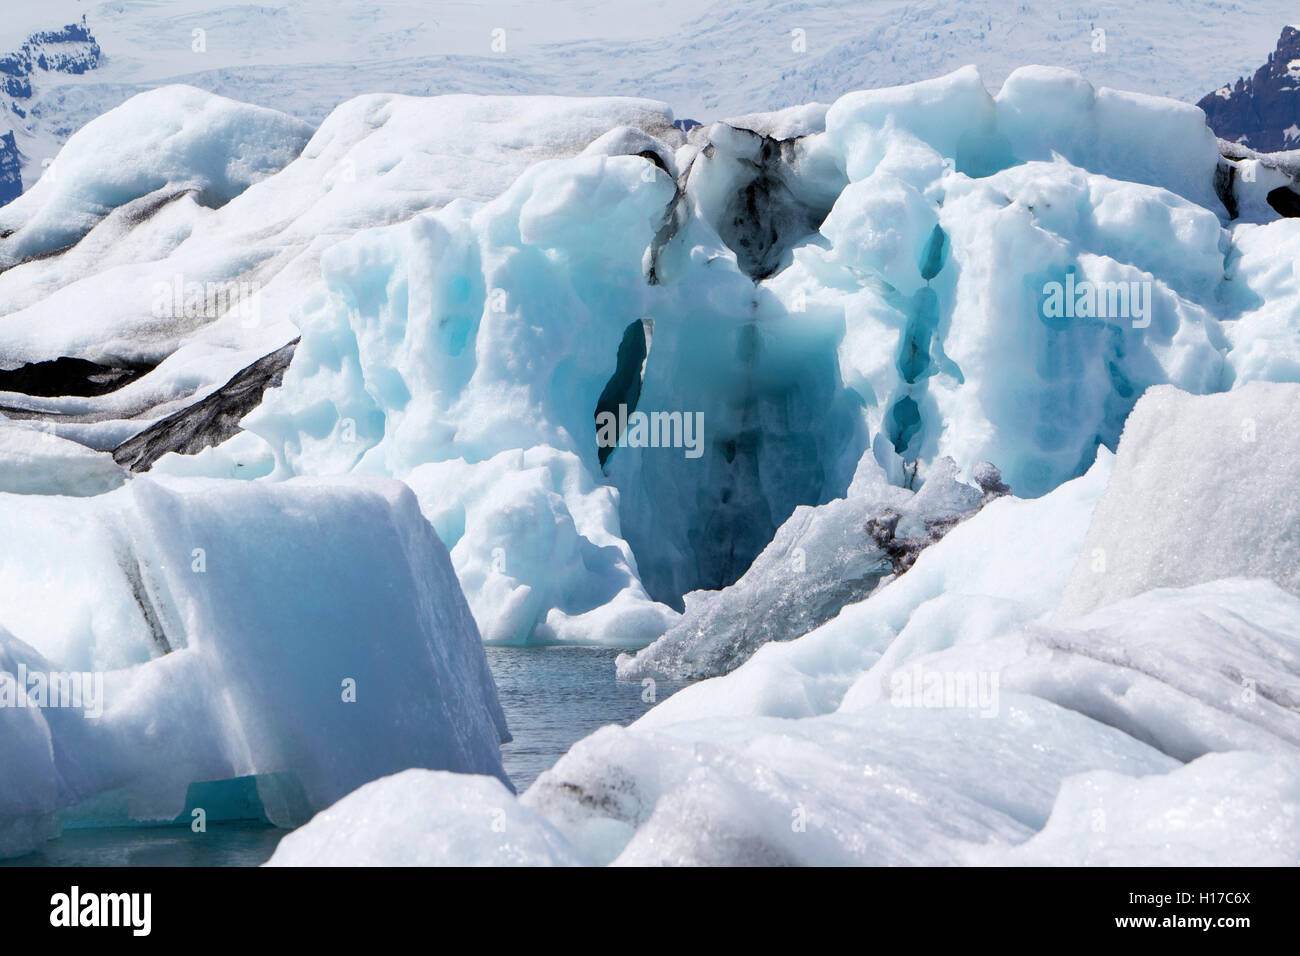 wind blown and sculpted icebergs at Jokulsarlon glacial lagoon Iceland - Stock Image